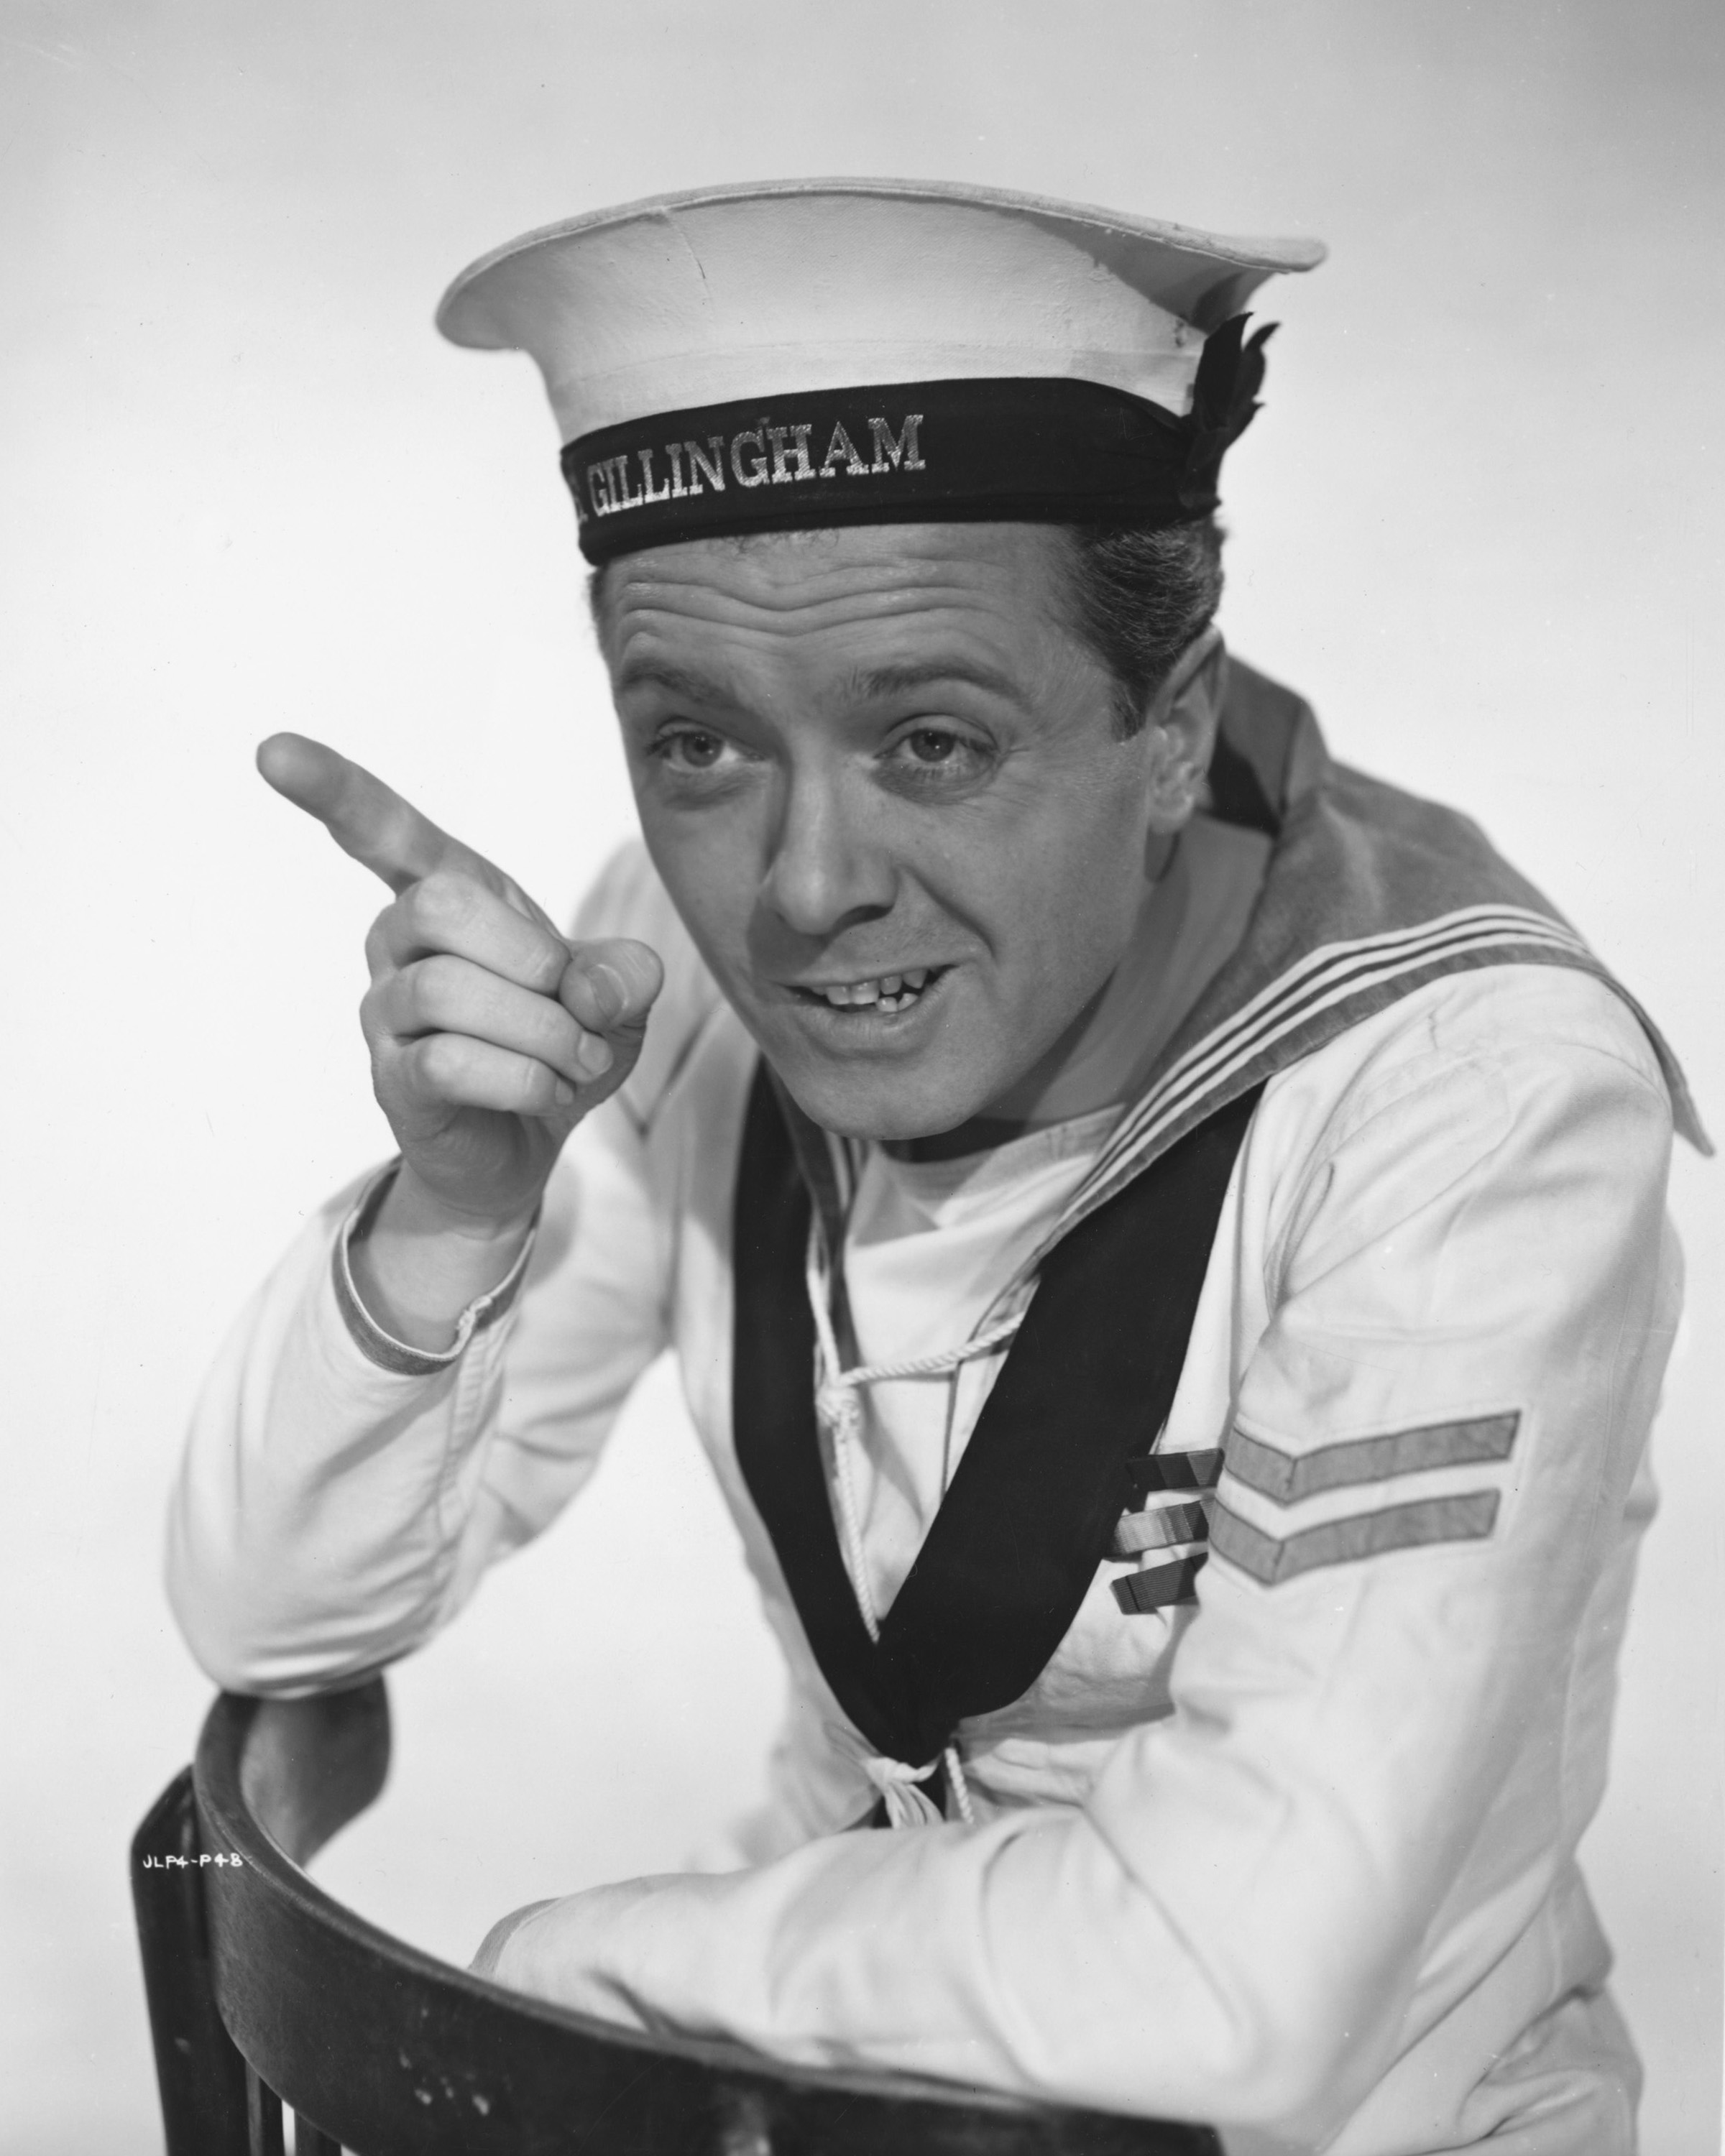 Richard Attenborough as Knocker White in a promotional portrait for The Baby and the Battleship in 1956.